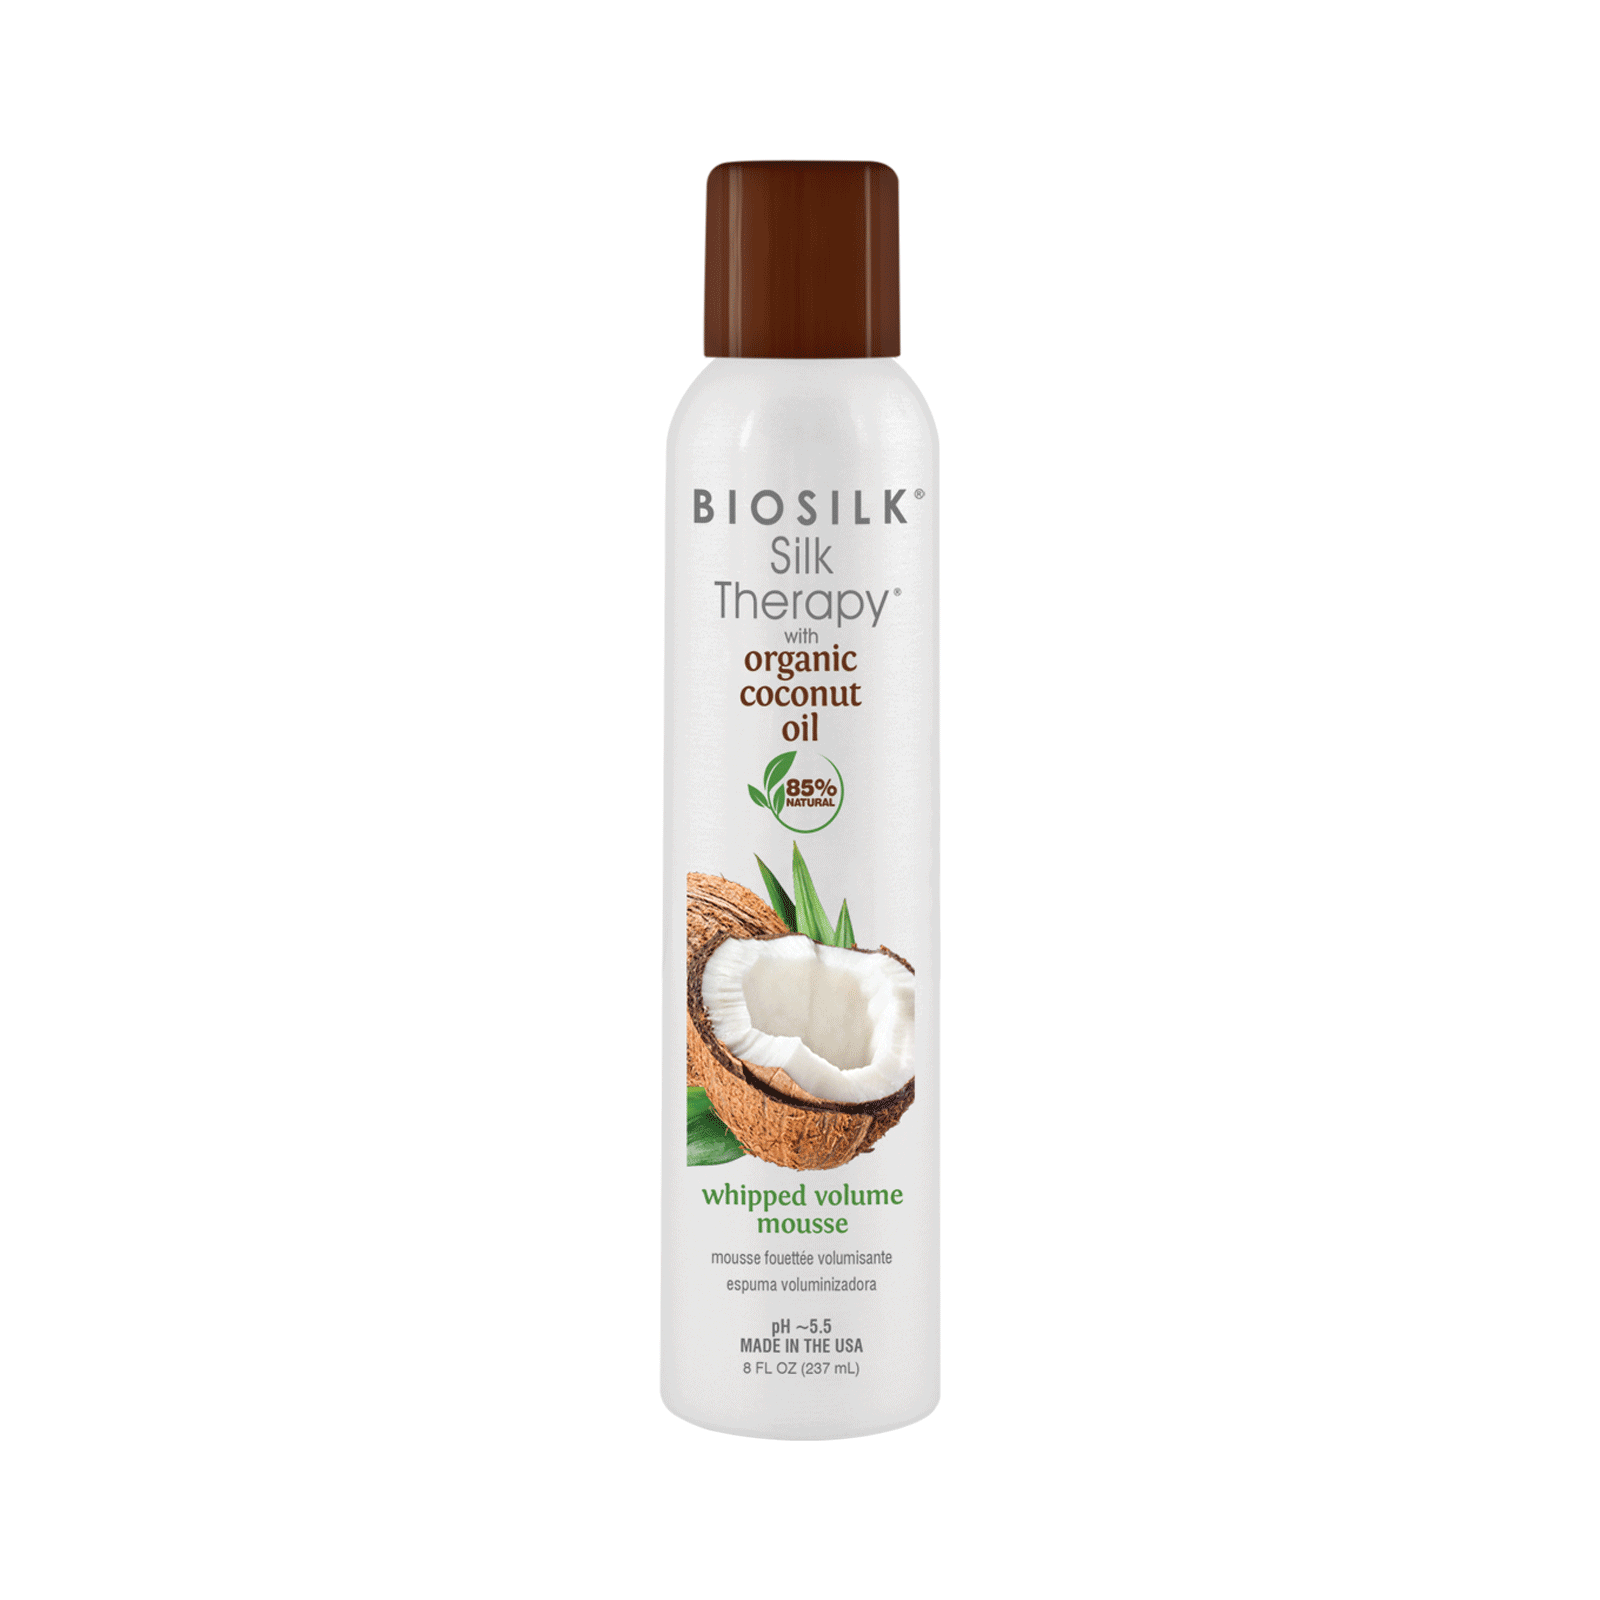 Farouk Biosilk Silk Therapy with Coconut Oil Whipped Volume Mousse, 8oz